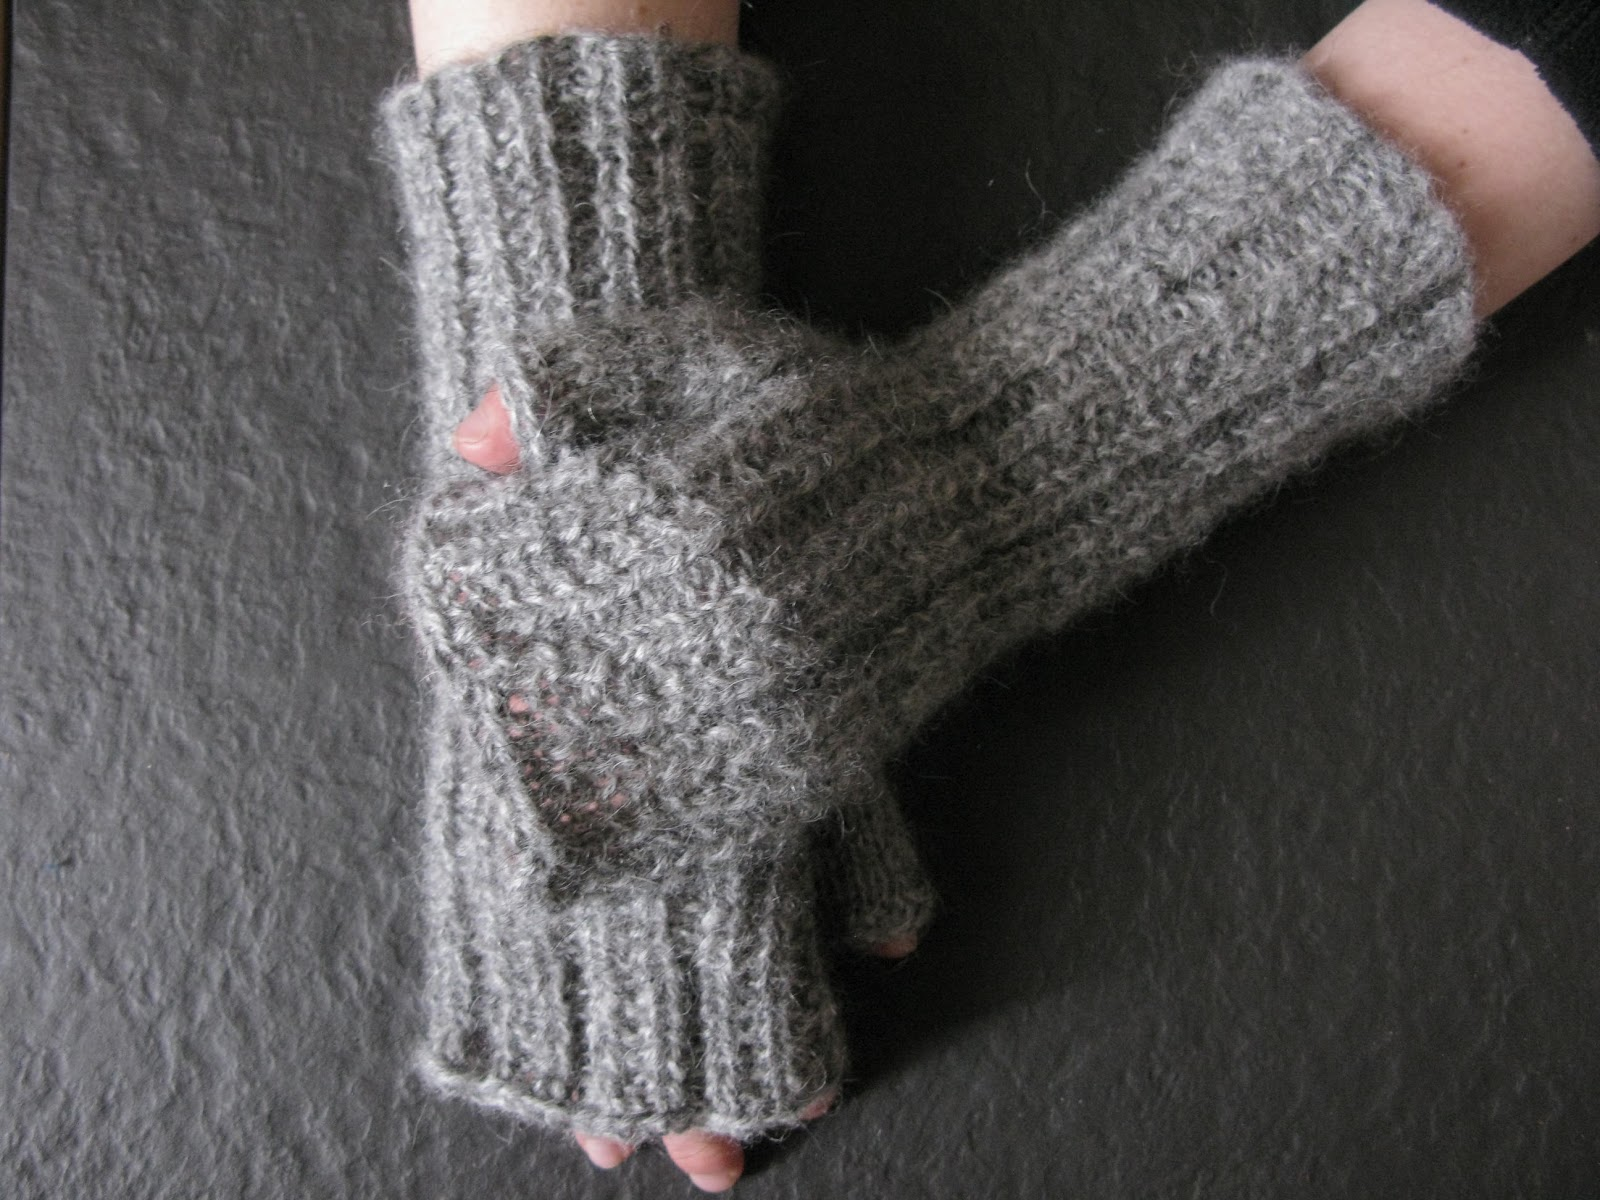 littletheorem: Beaded Rib Mitts